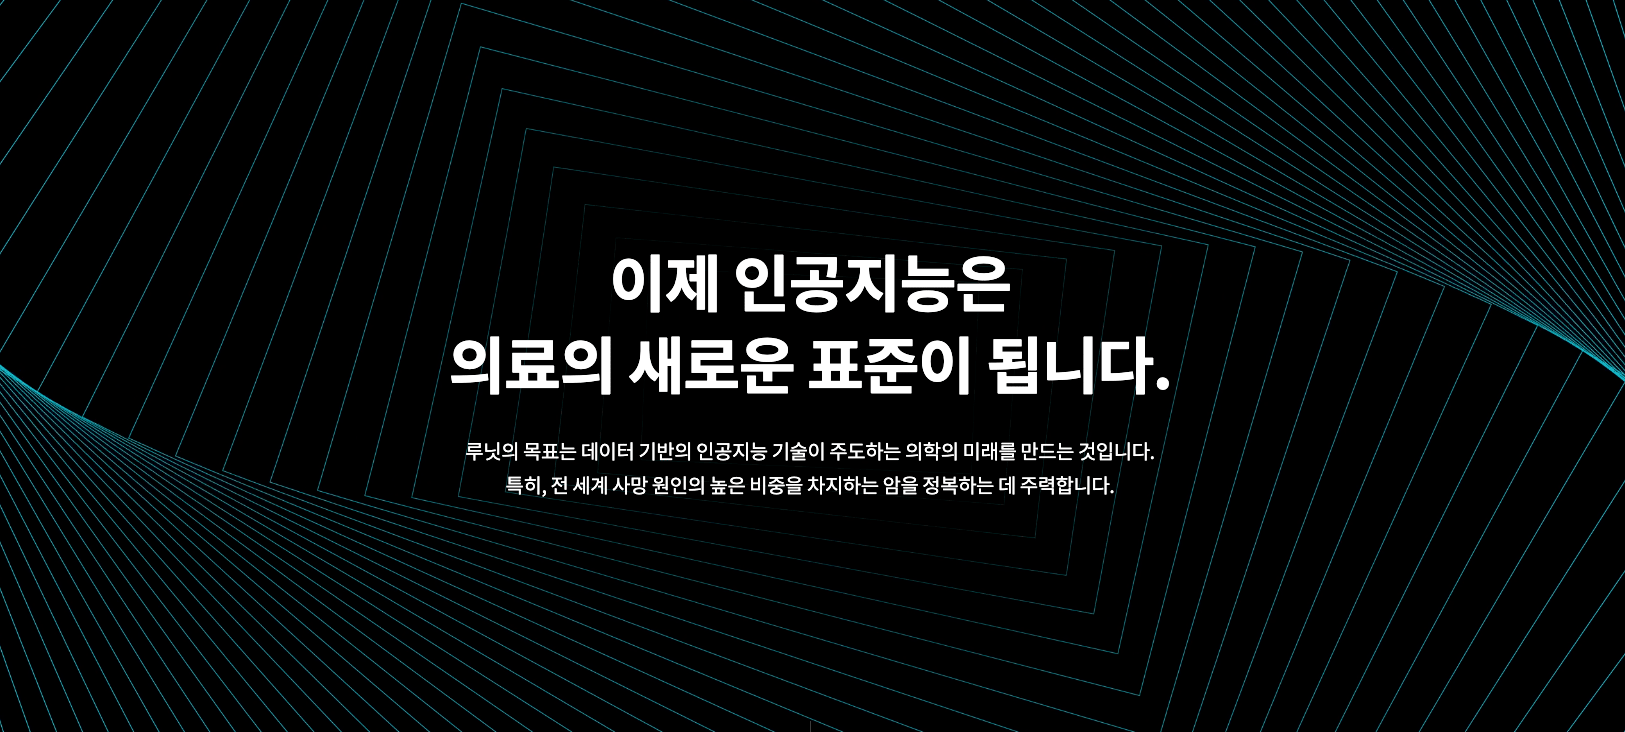 Lunit_homepage-min.png